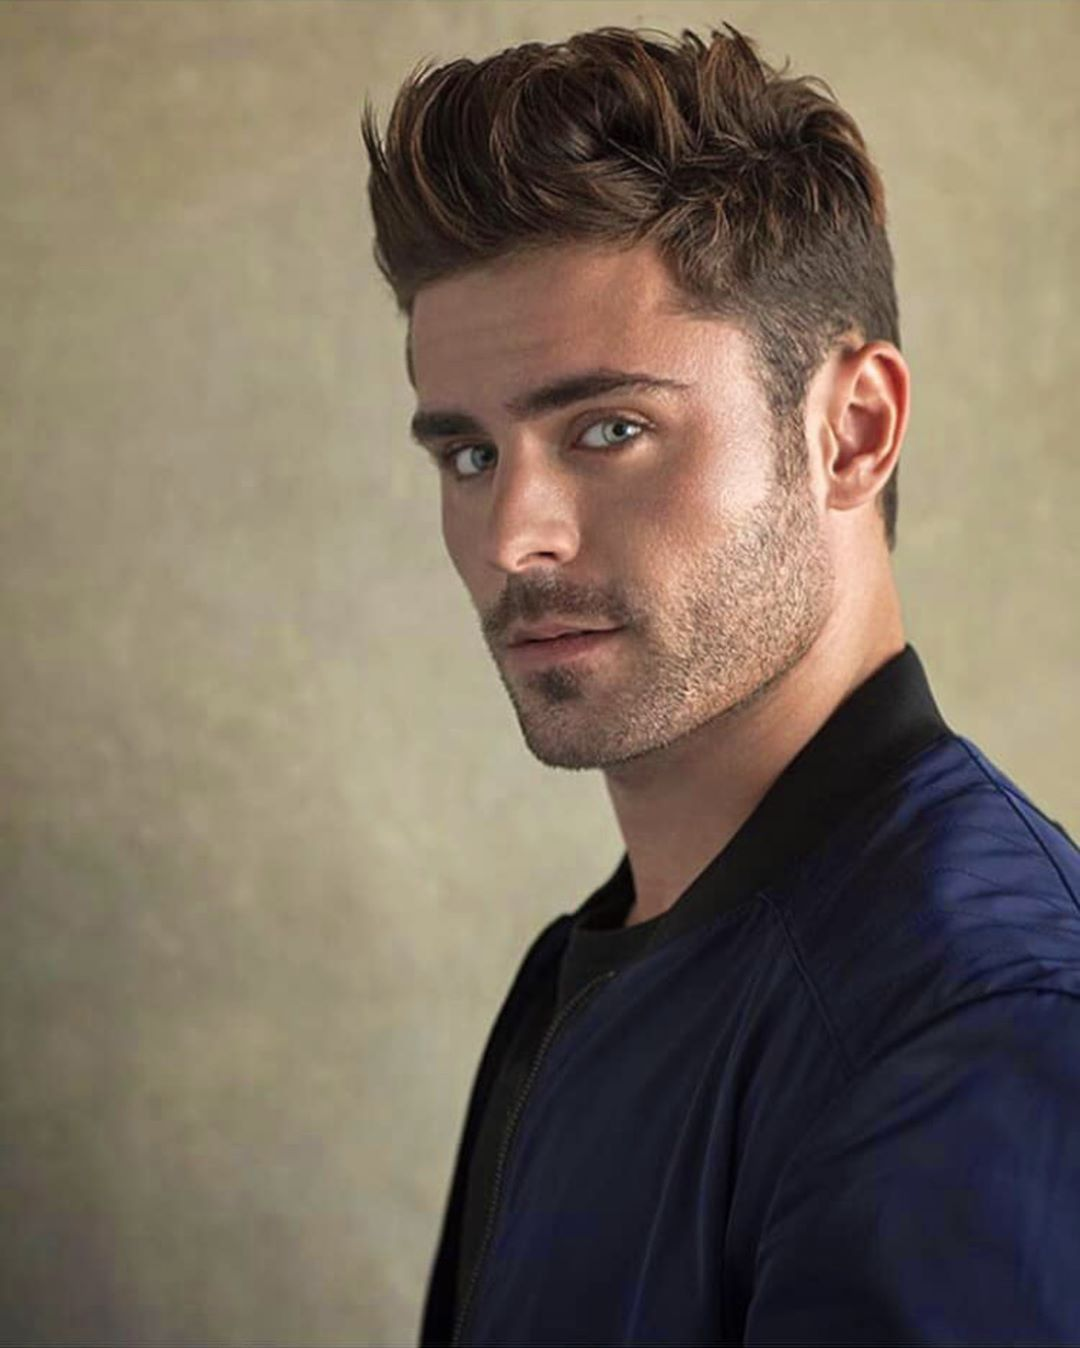 Instagram Post By Zac Efron Fans Apr 3 2019 At 3 07am Utc Zac Efron Hair Zac Efron Style Haircuts For Men